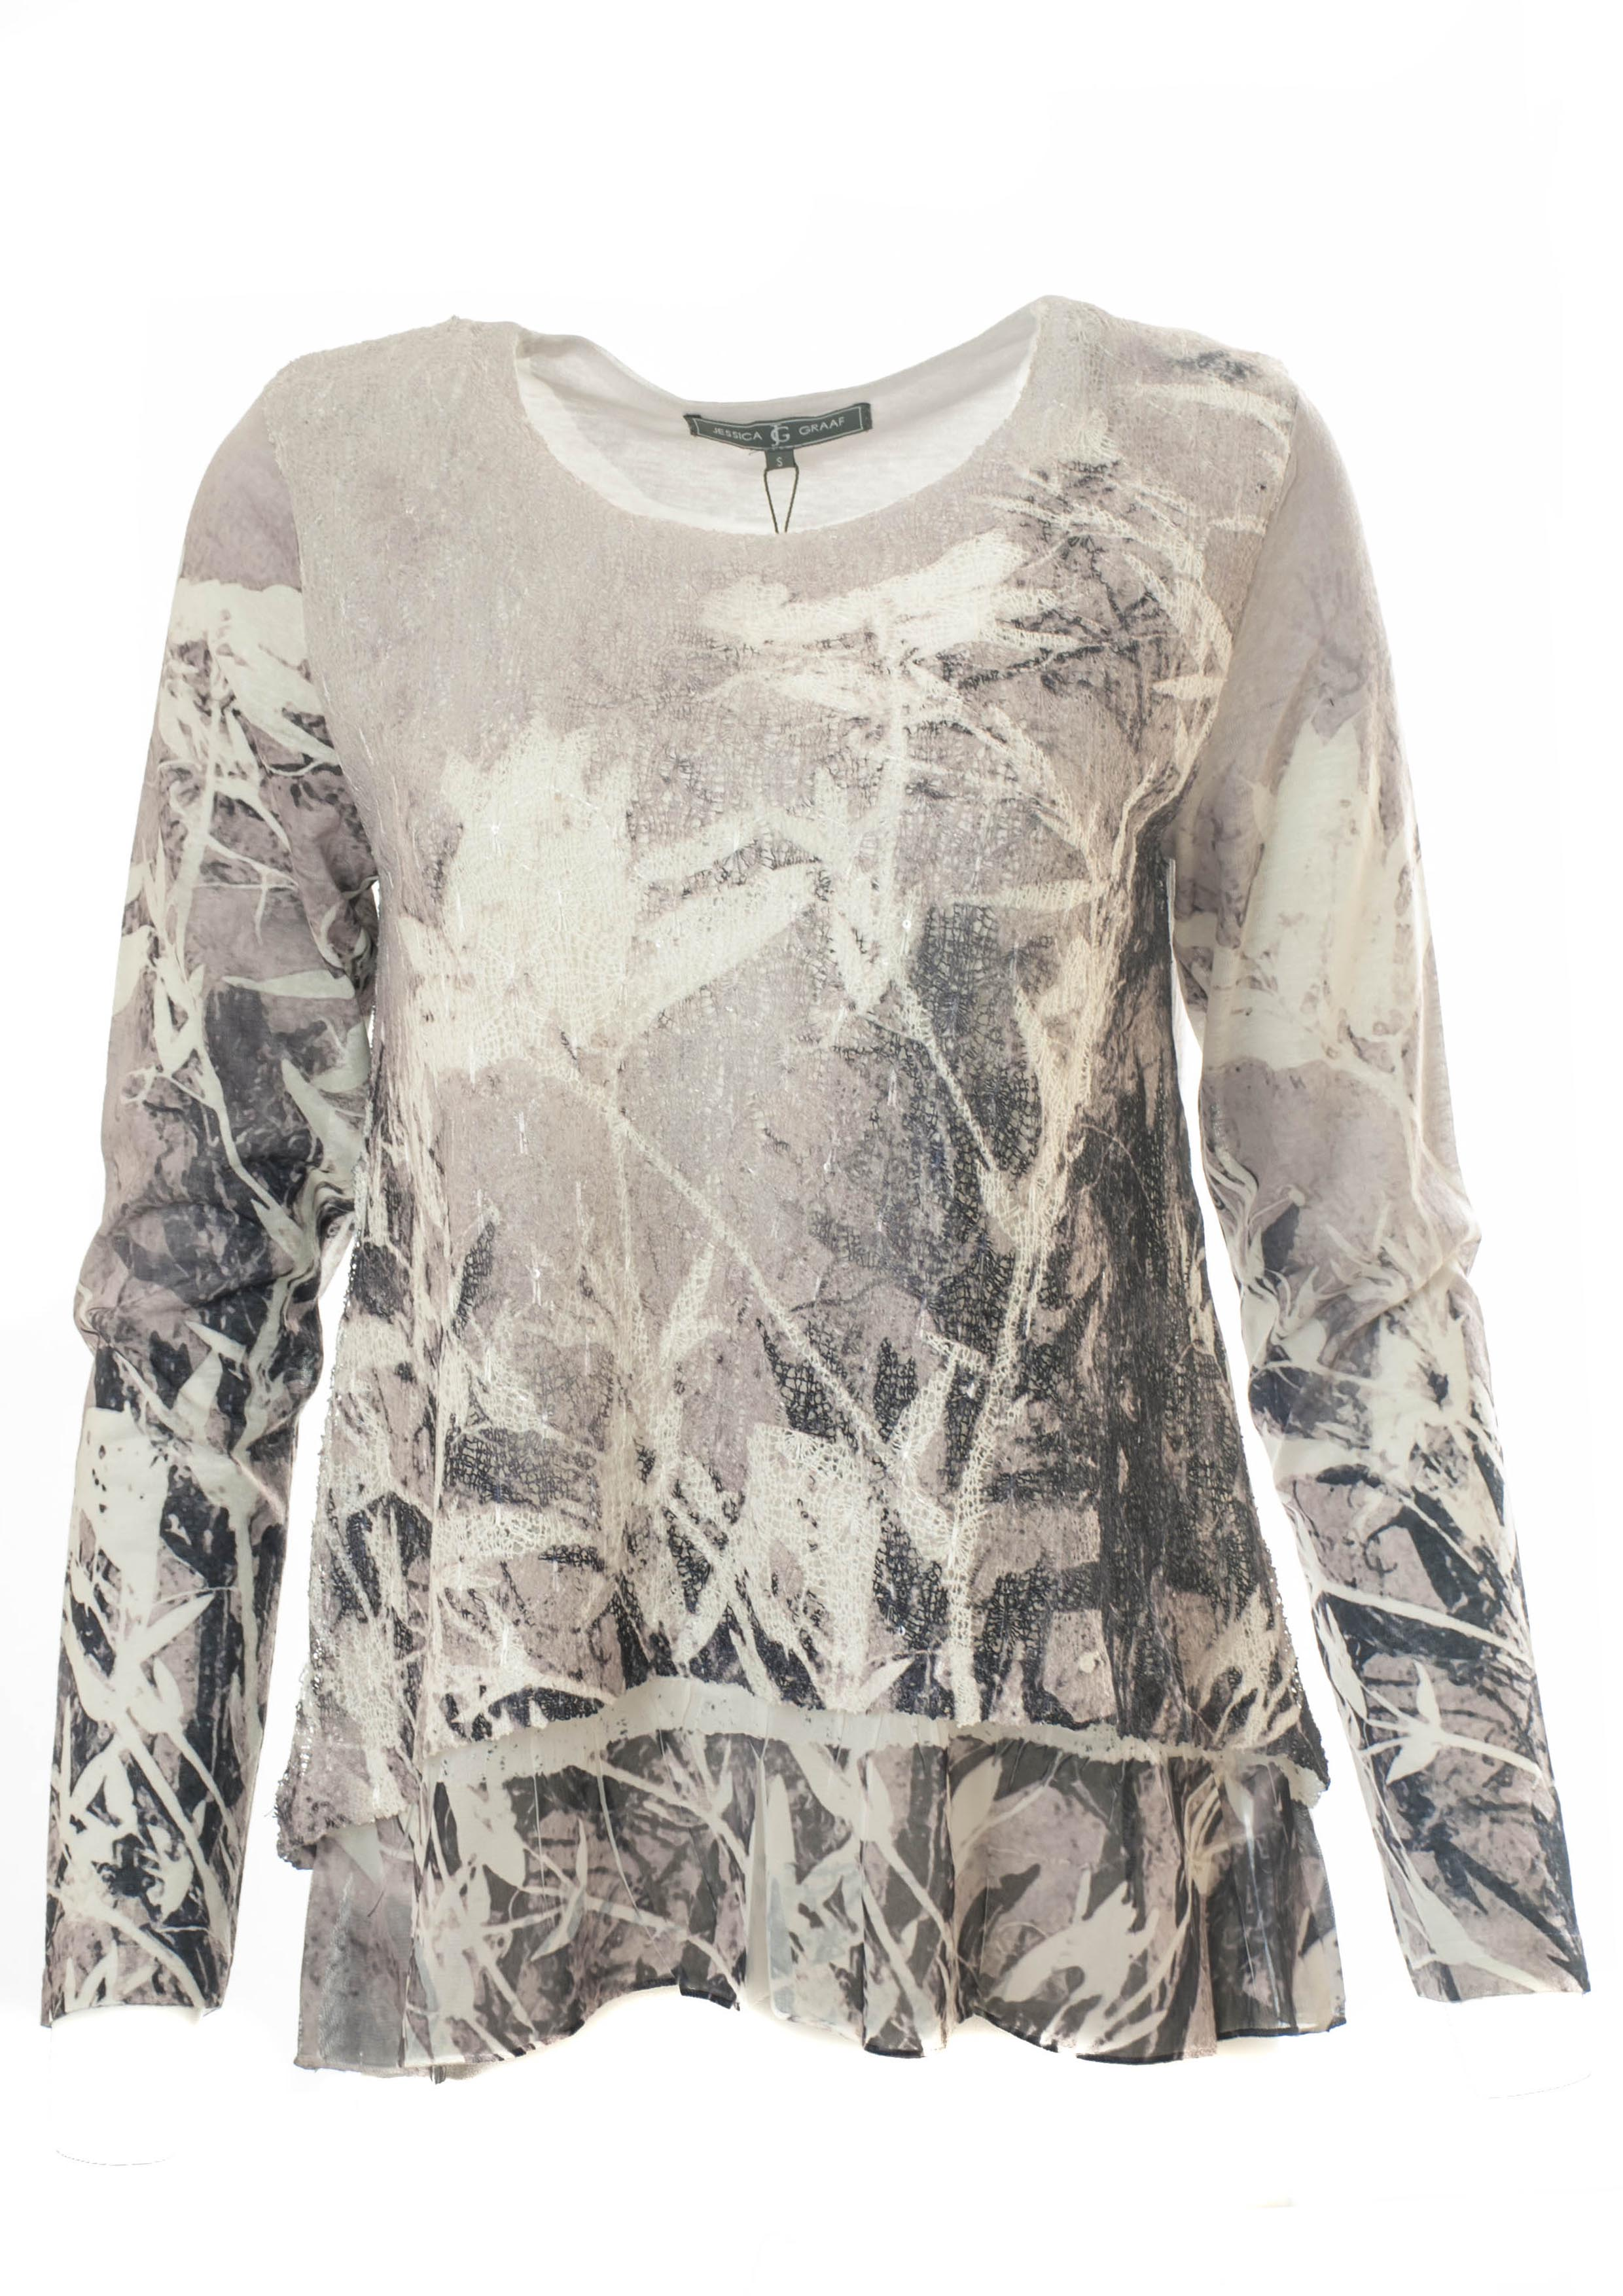 LAYERED PRINTED MESH TOP WITH CHIFFON